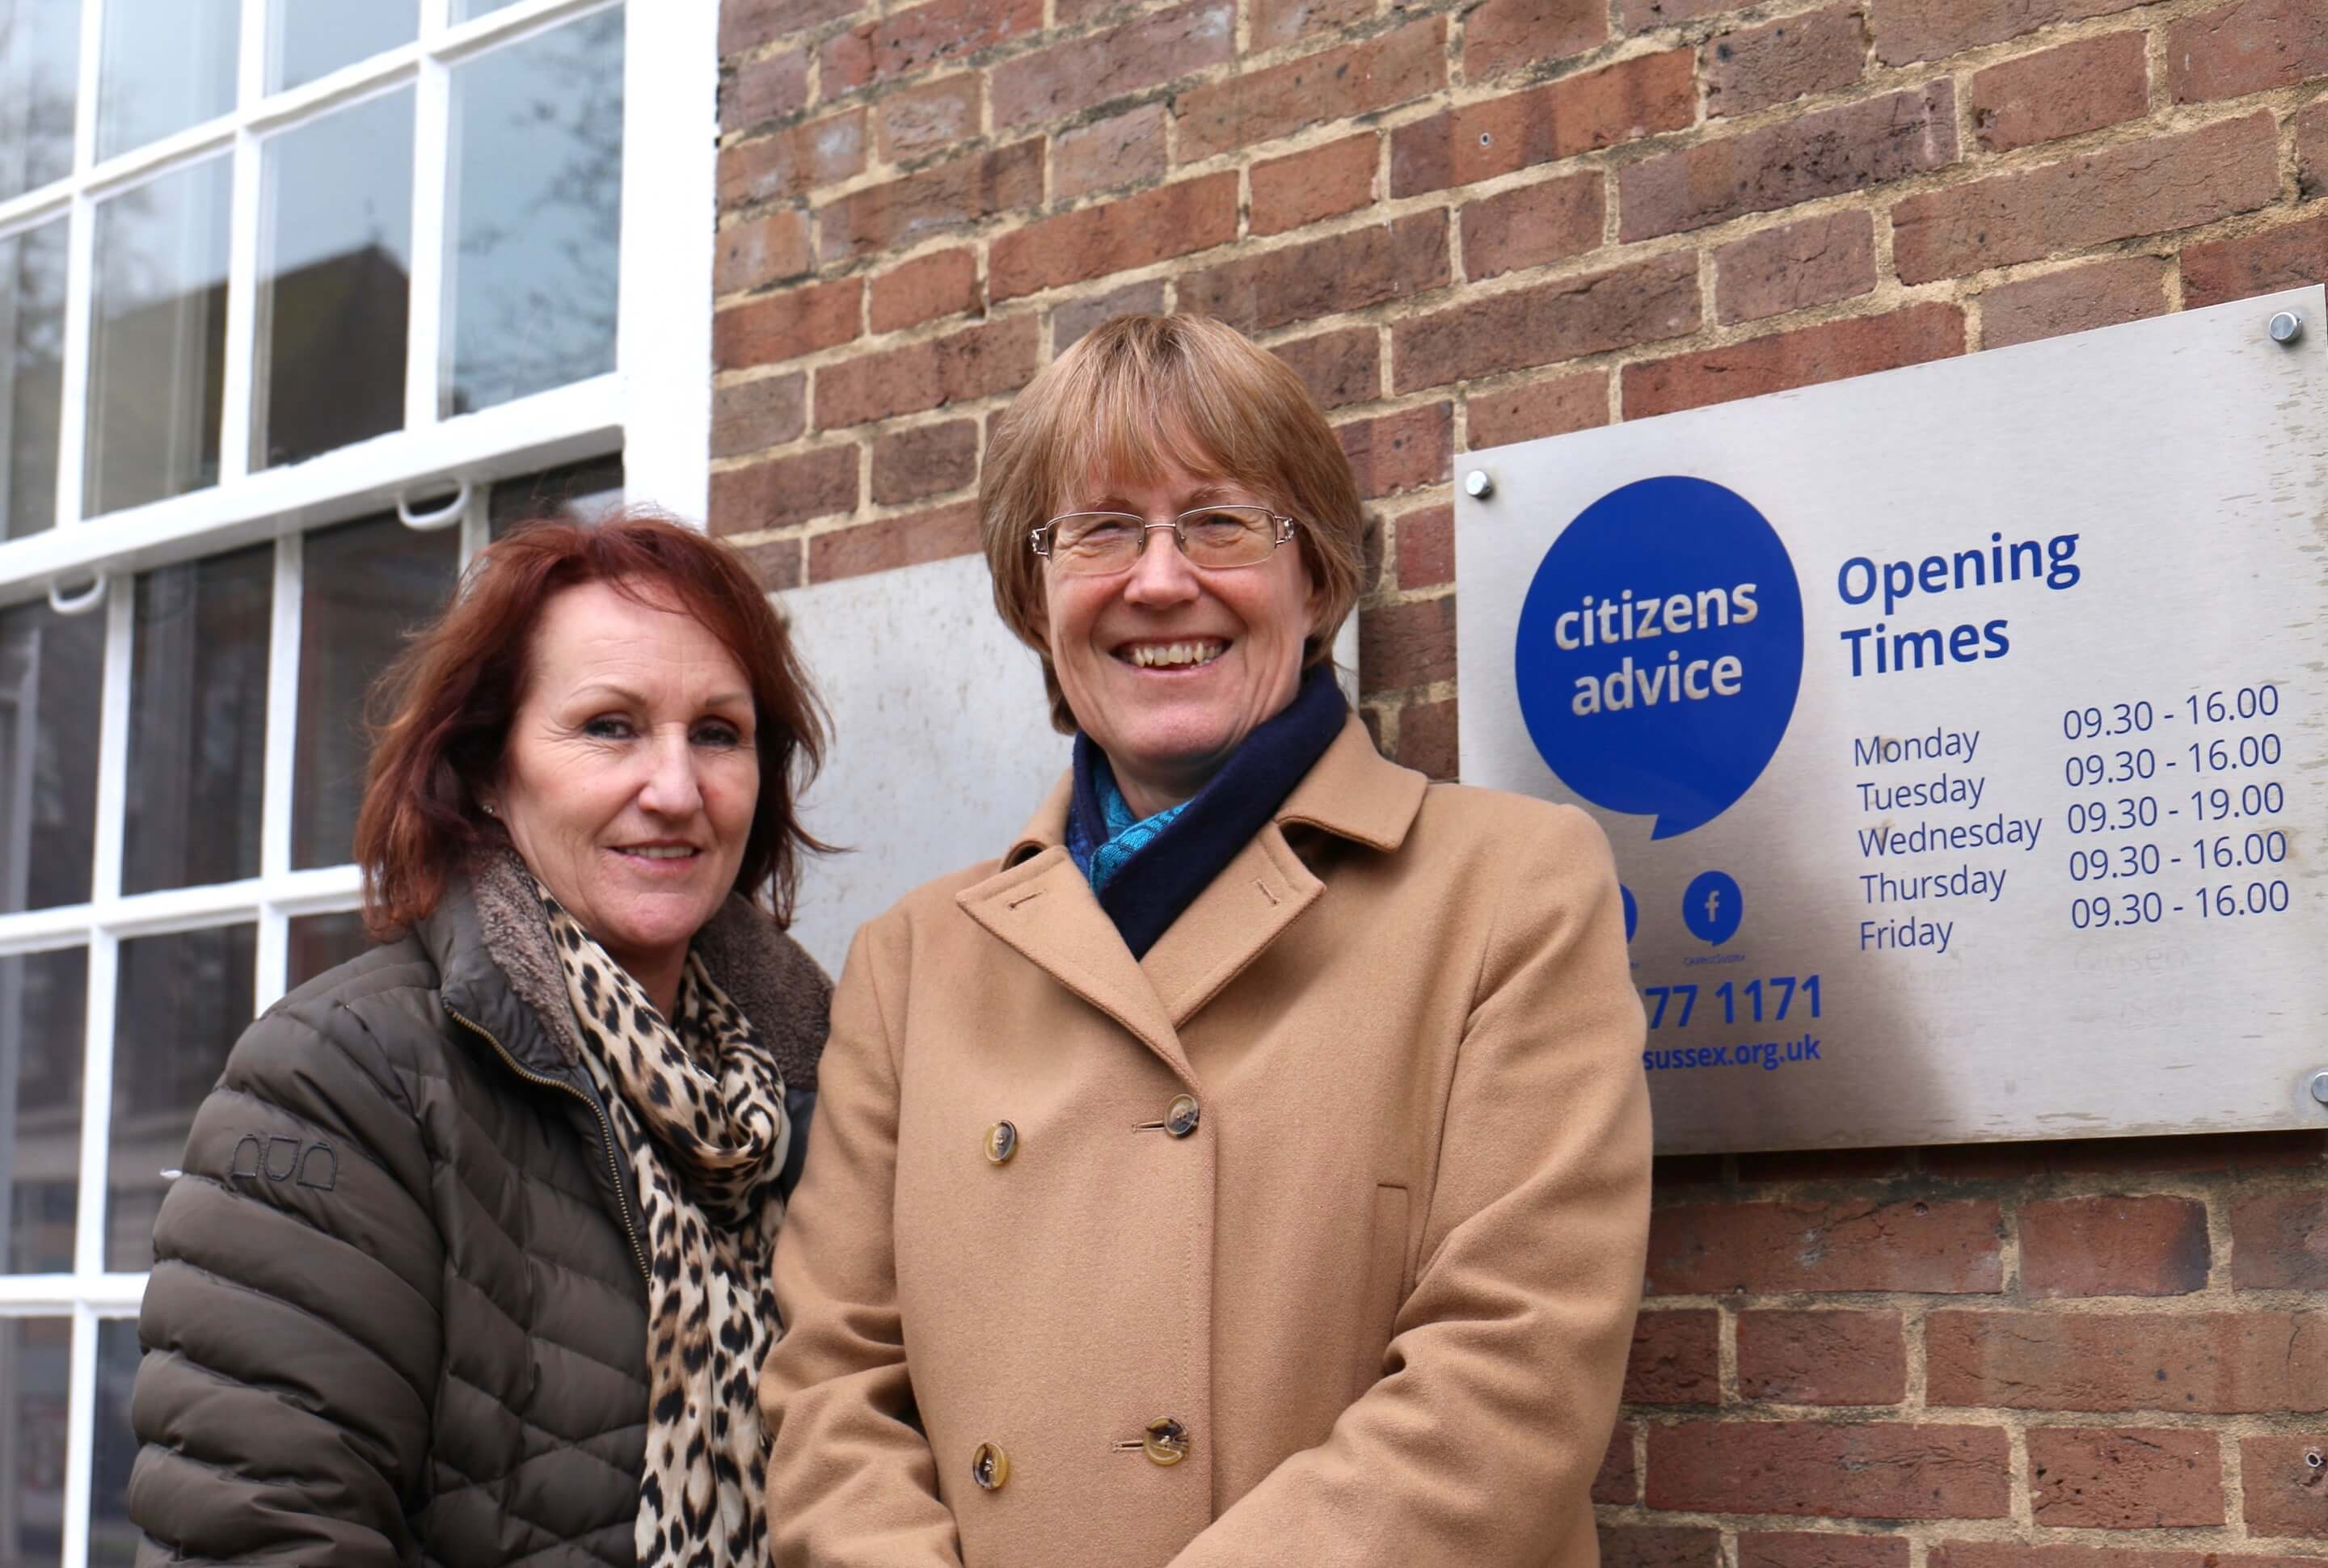 Citizens Advice has huge impact on lives across Adur and Worthing